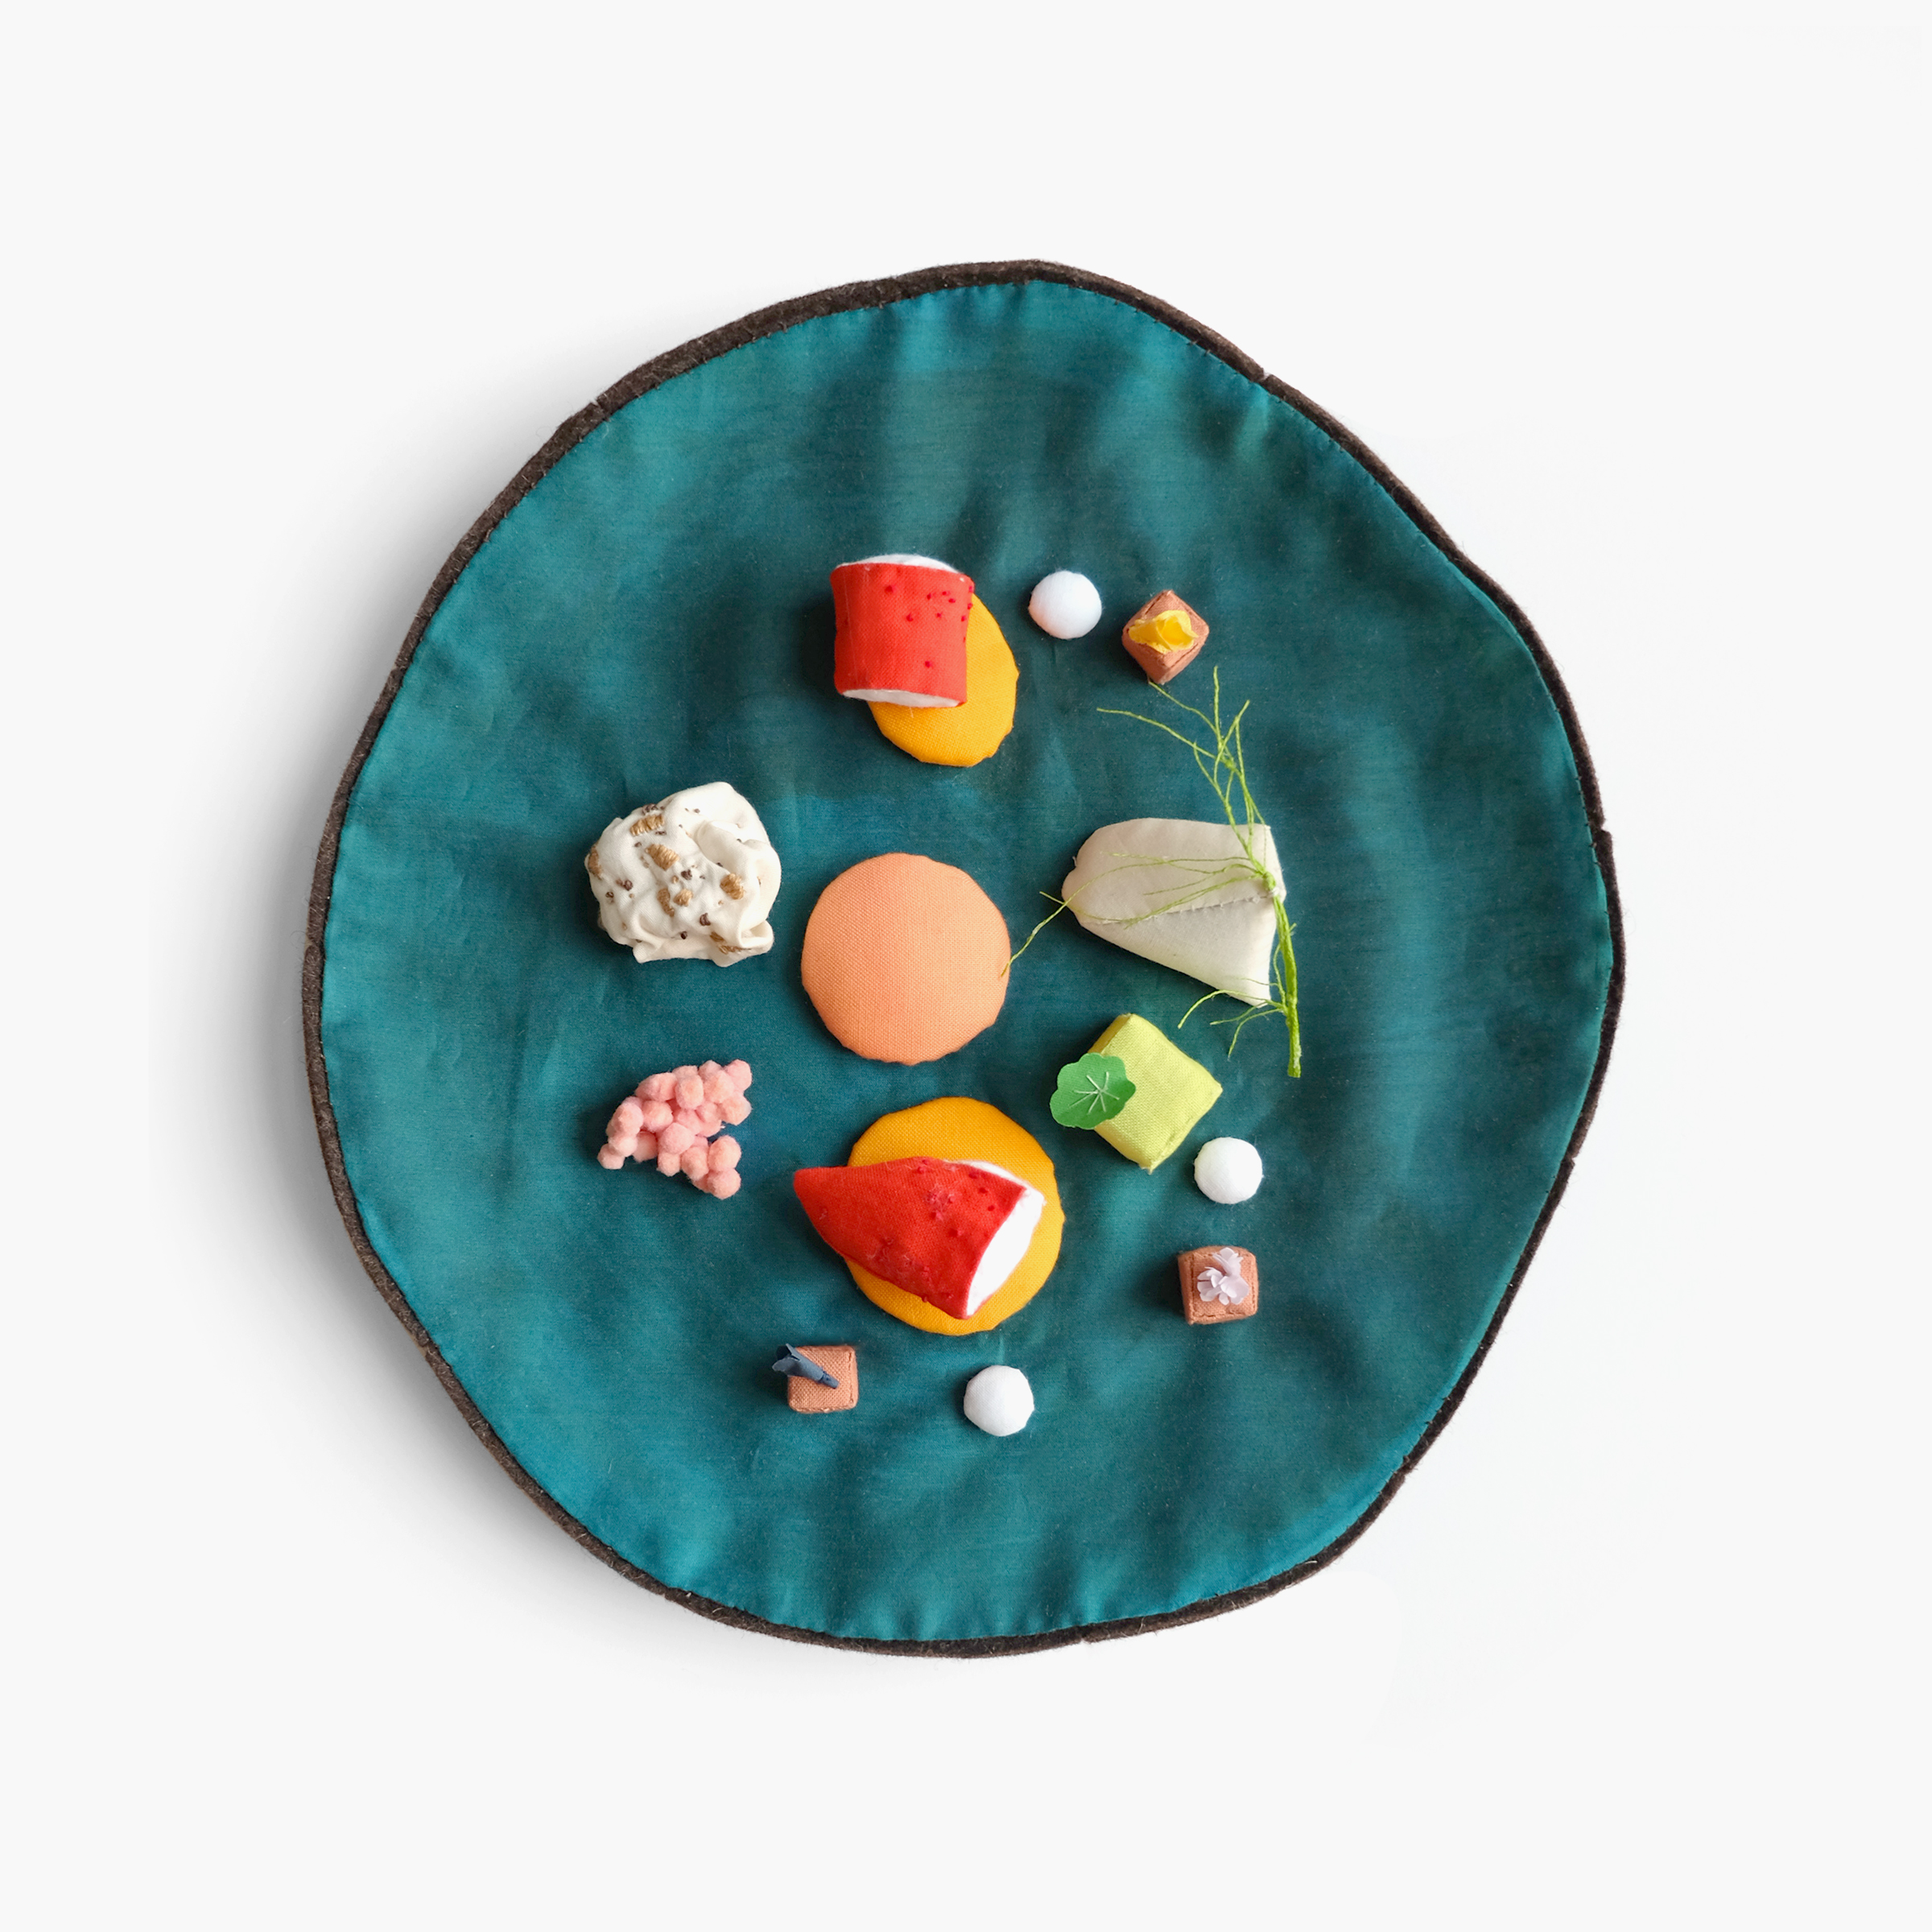 "Art and Science    ""Lobster, Curry, Earl Grey, Grapefruit"" from Alinea   Felt, fiberfill, cotton cloth, pom pom, embroidery floss 1.25 x 9 x 9 in 2014"